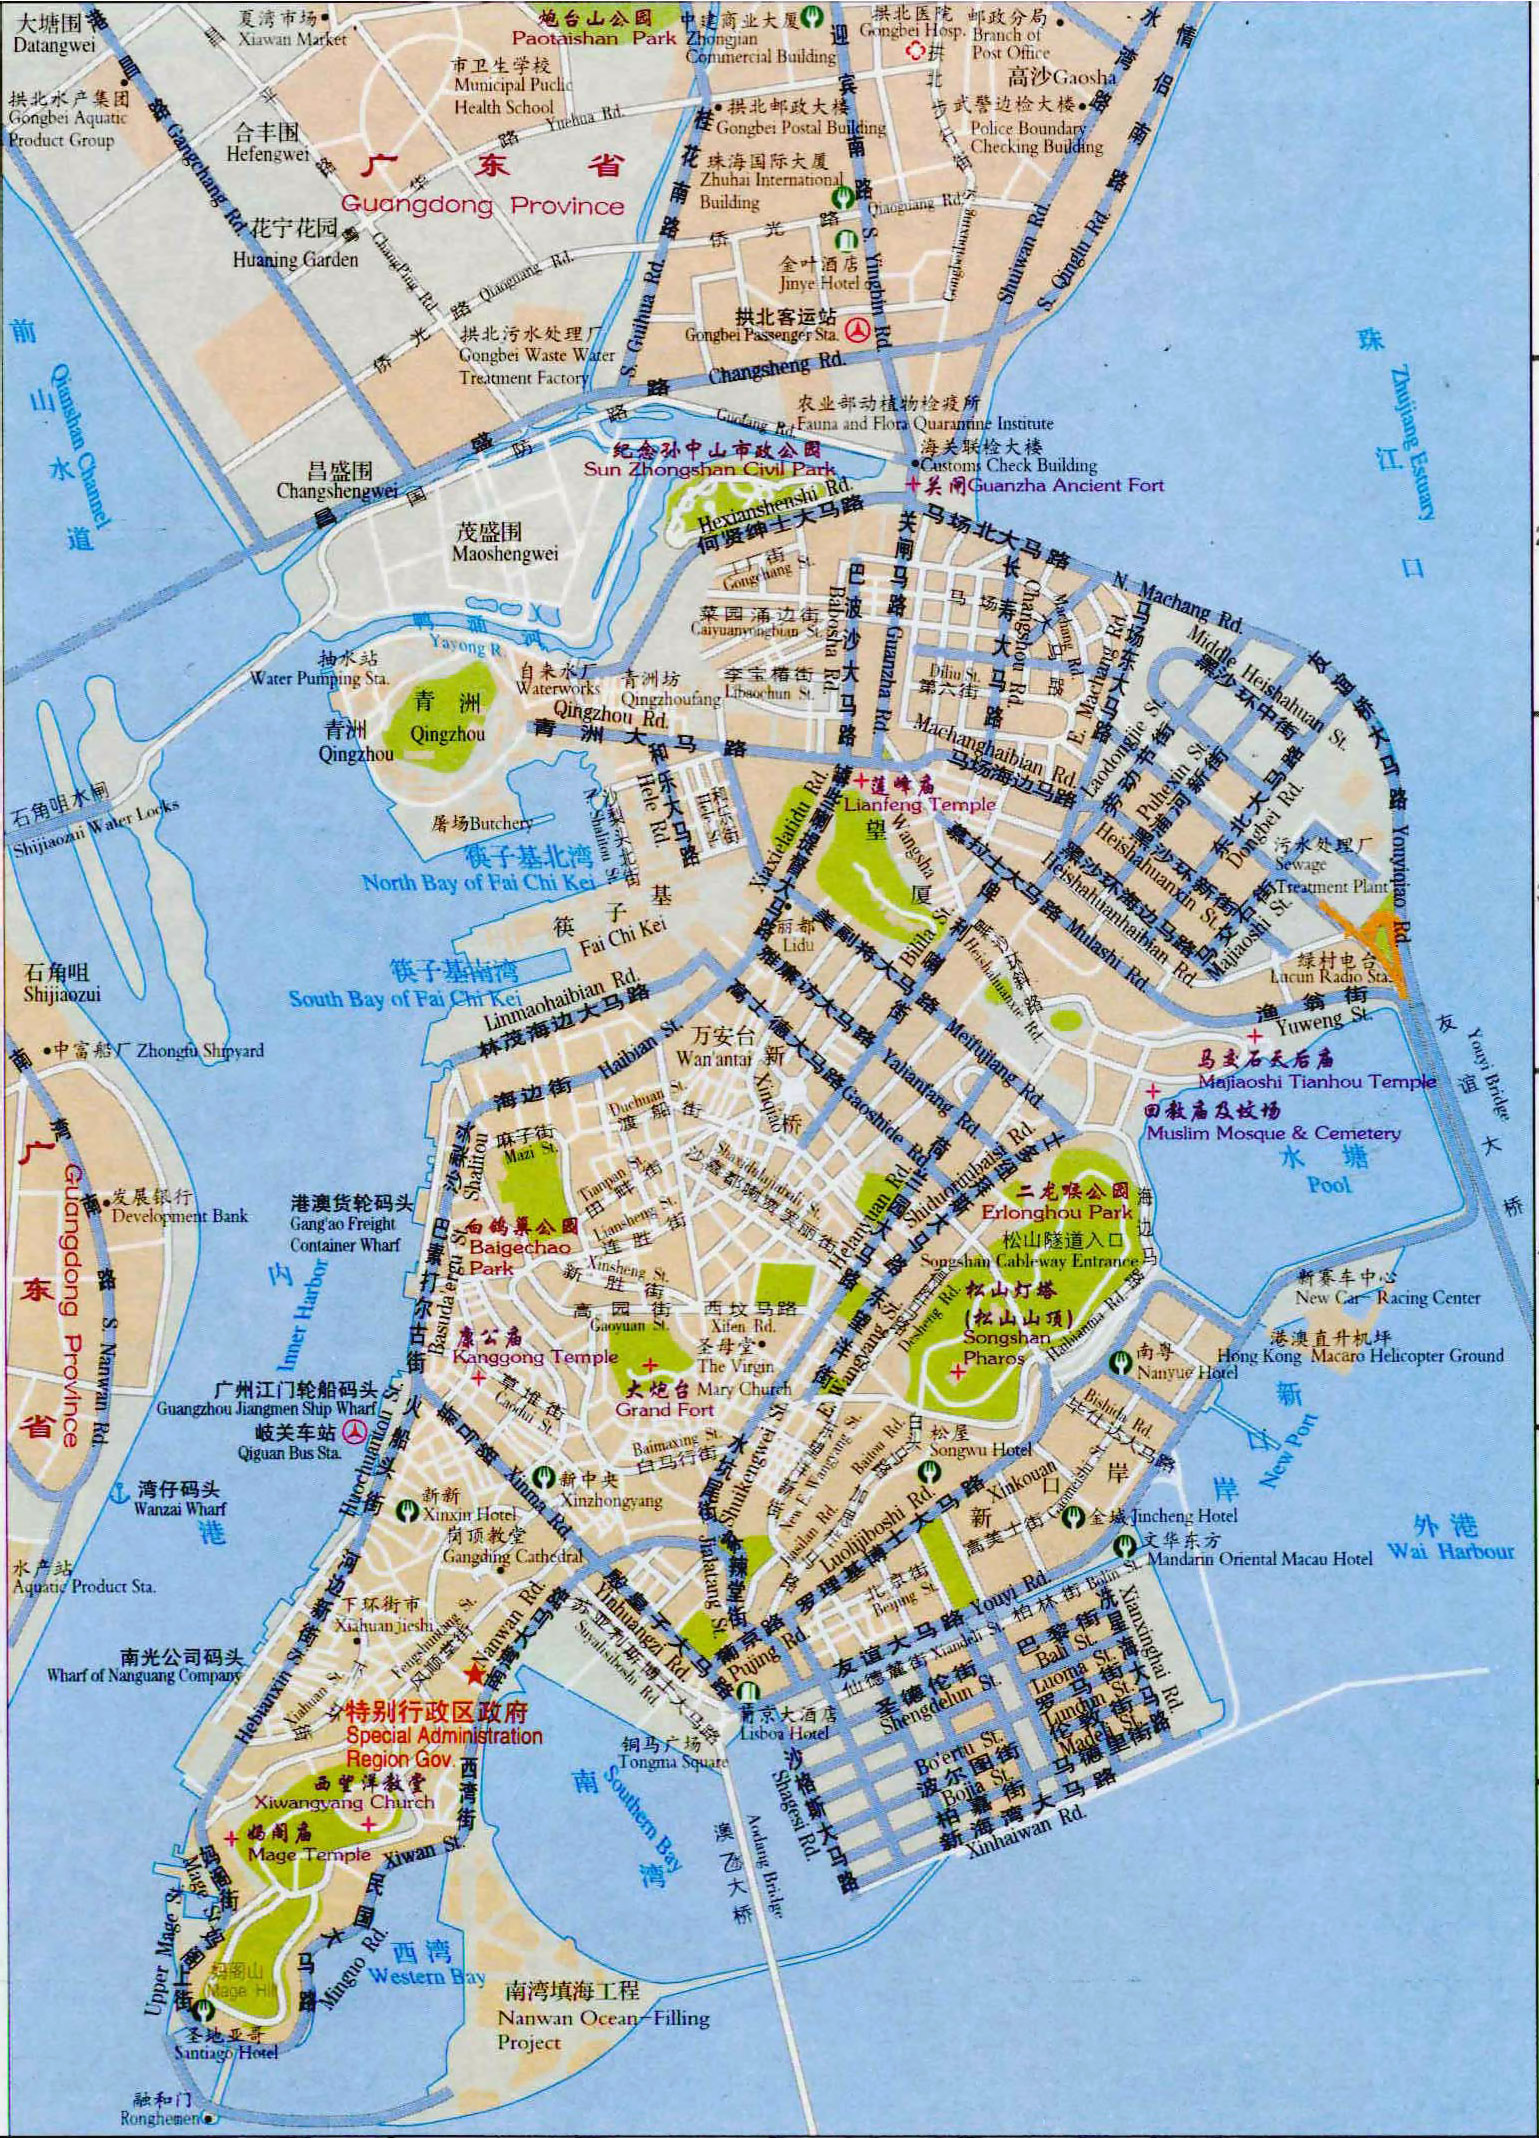 map of sao tome principe, map of hong kong, map of cantonese, map of nanjing university, map of mongolia, map of french equatorial africa, map china, map of bissau, map of hankou, map of scotland, map of sulaymaniyah, map of no. africa, map of ormuz, map of brunei, map of asia, map of cotai, map of malawi, map of democratic kampuchea, map of jinzhou, map of united arab of emirates, on map of macau s